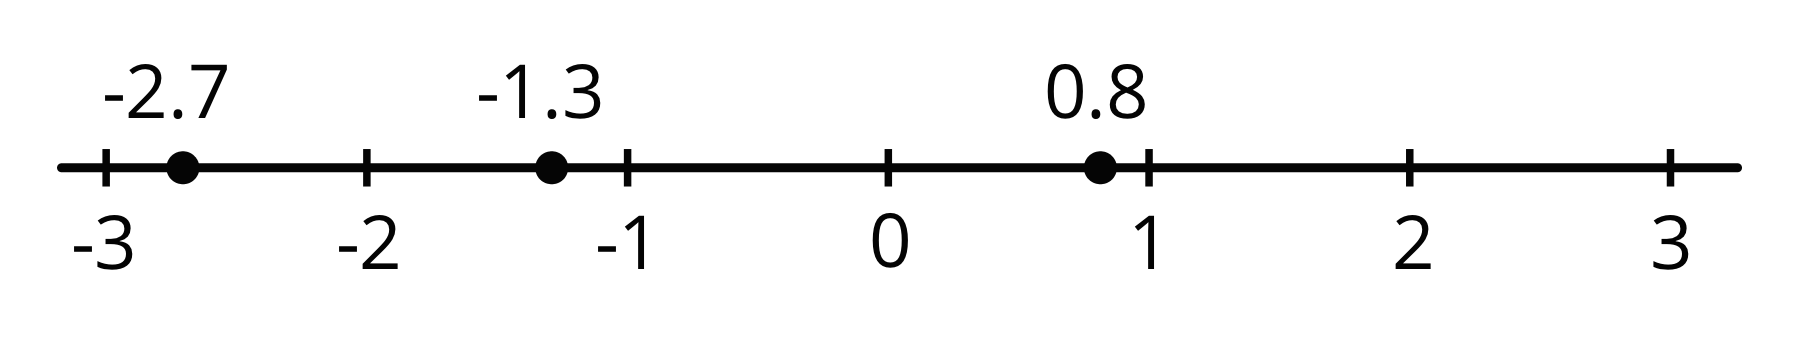 Three points plotted on a number line and the numbers negative 3 through 3 are indicated. The numbers are as follows: Point 1: negative 2 point 7.  Point 2: negative 3 and negative 2. Point 3: zero point 8